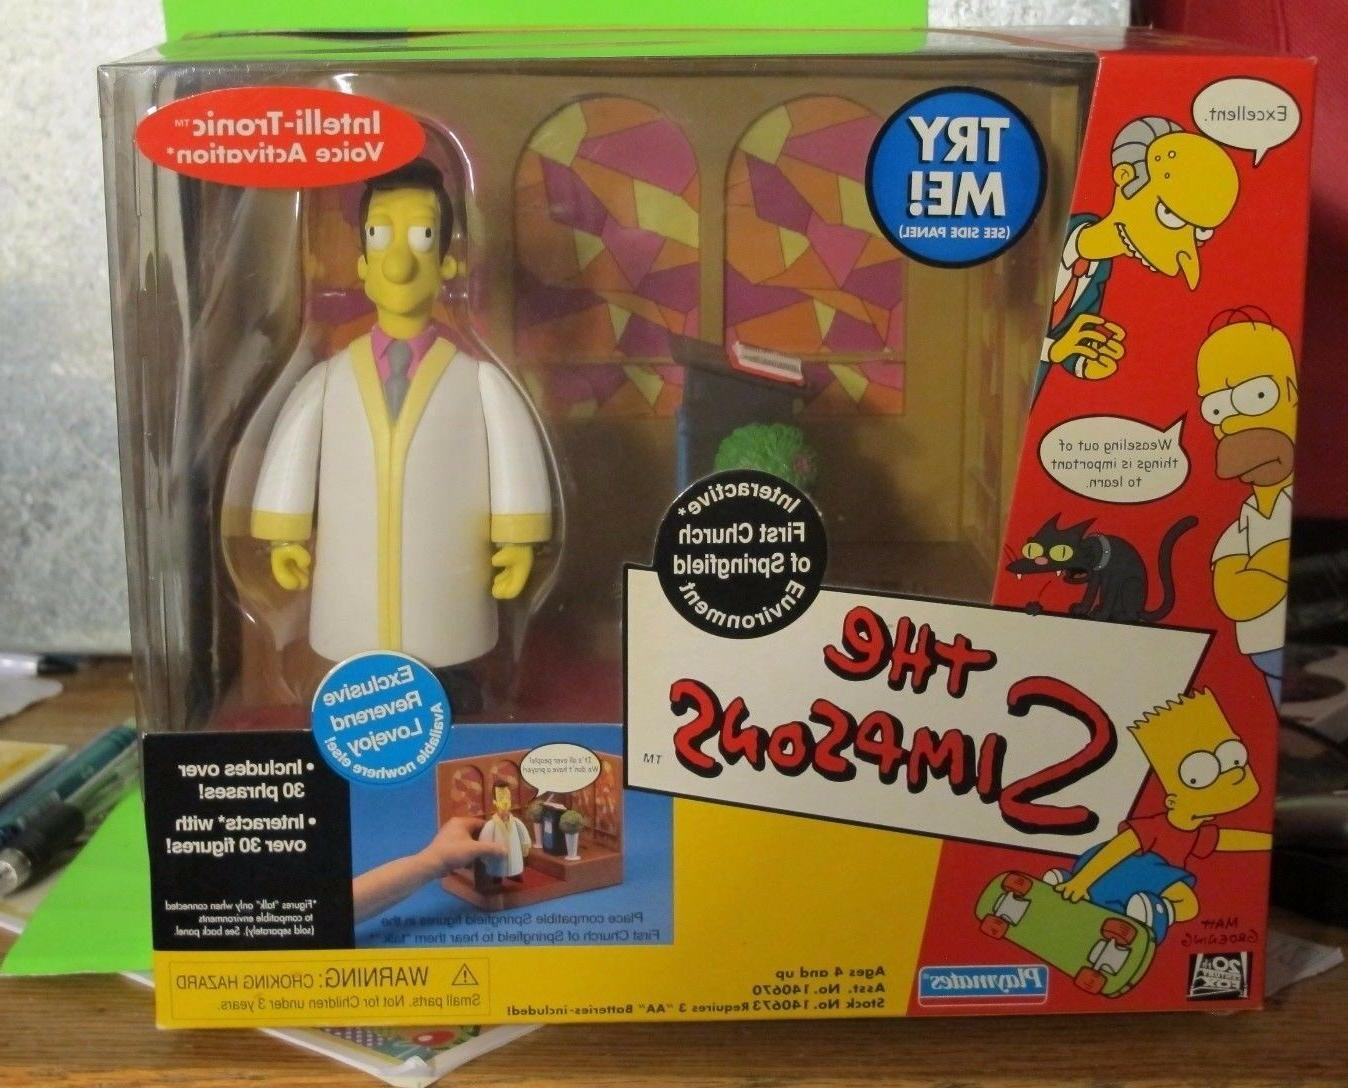 simpsons wos interactive dock station minister timothy